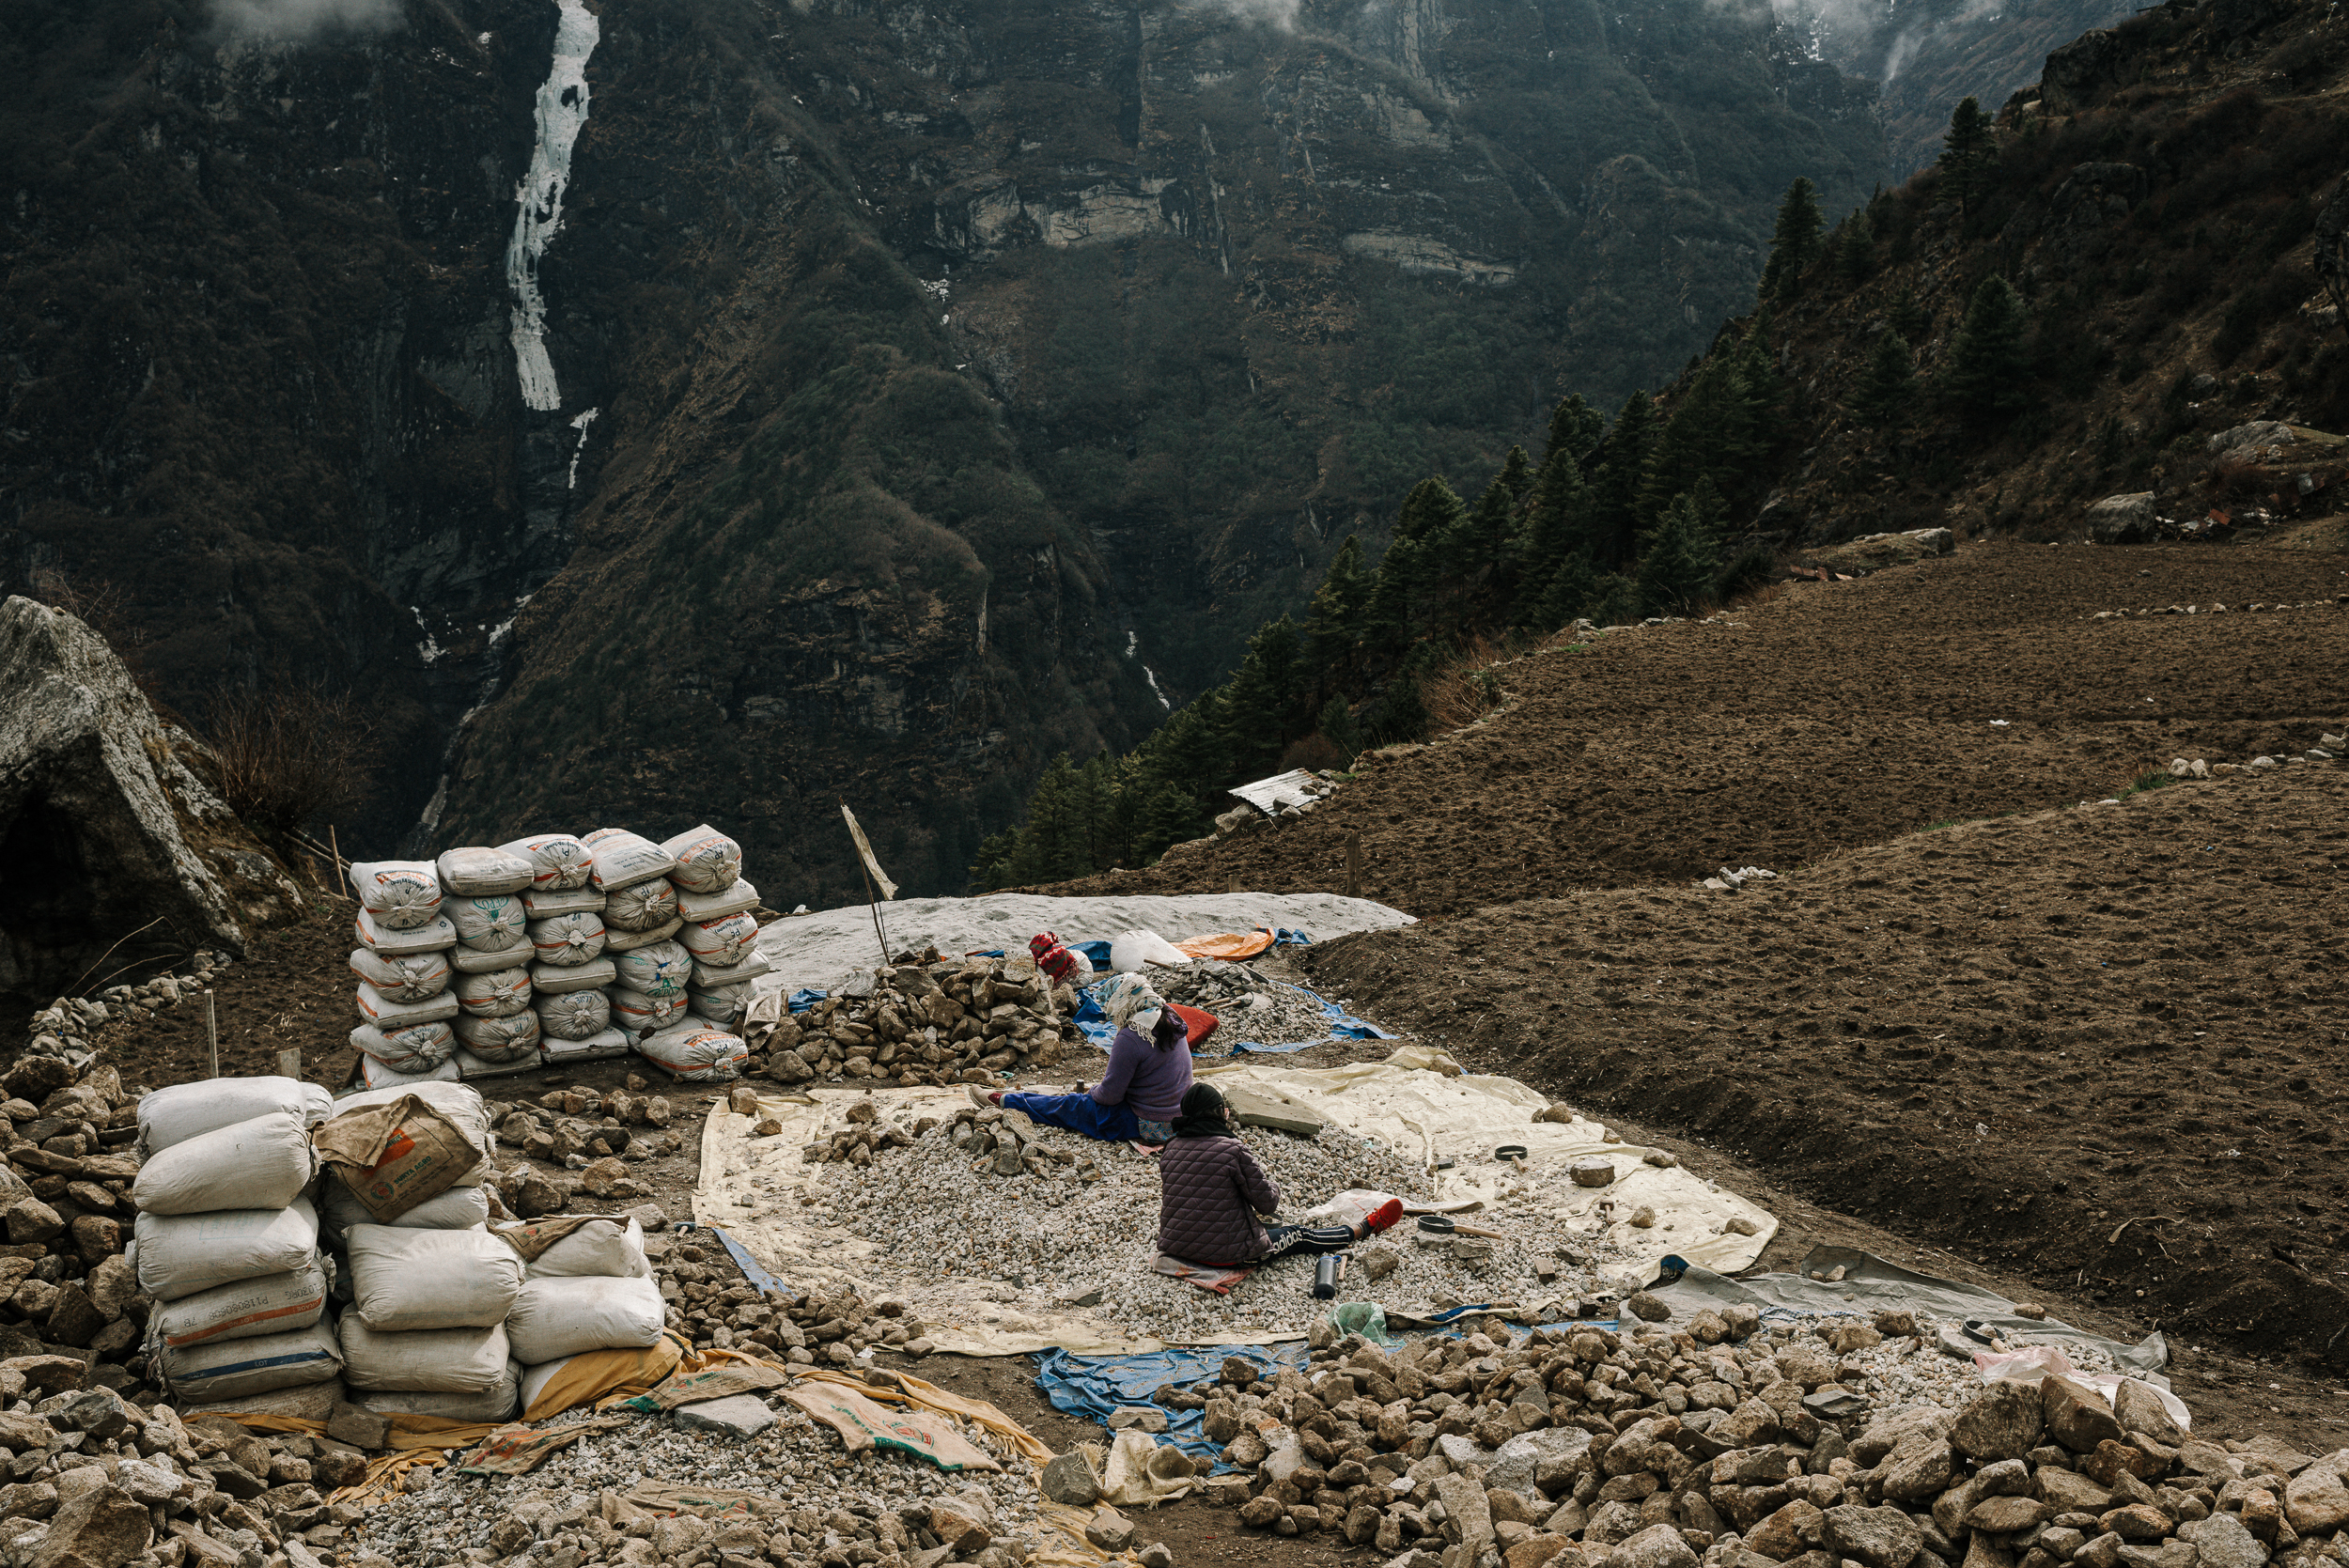 Nepal_EverestBaseCamp_2019_TaraShupe_Photography_DSC_3696.jpg